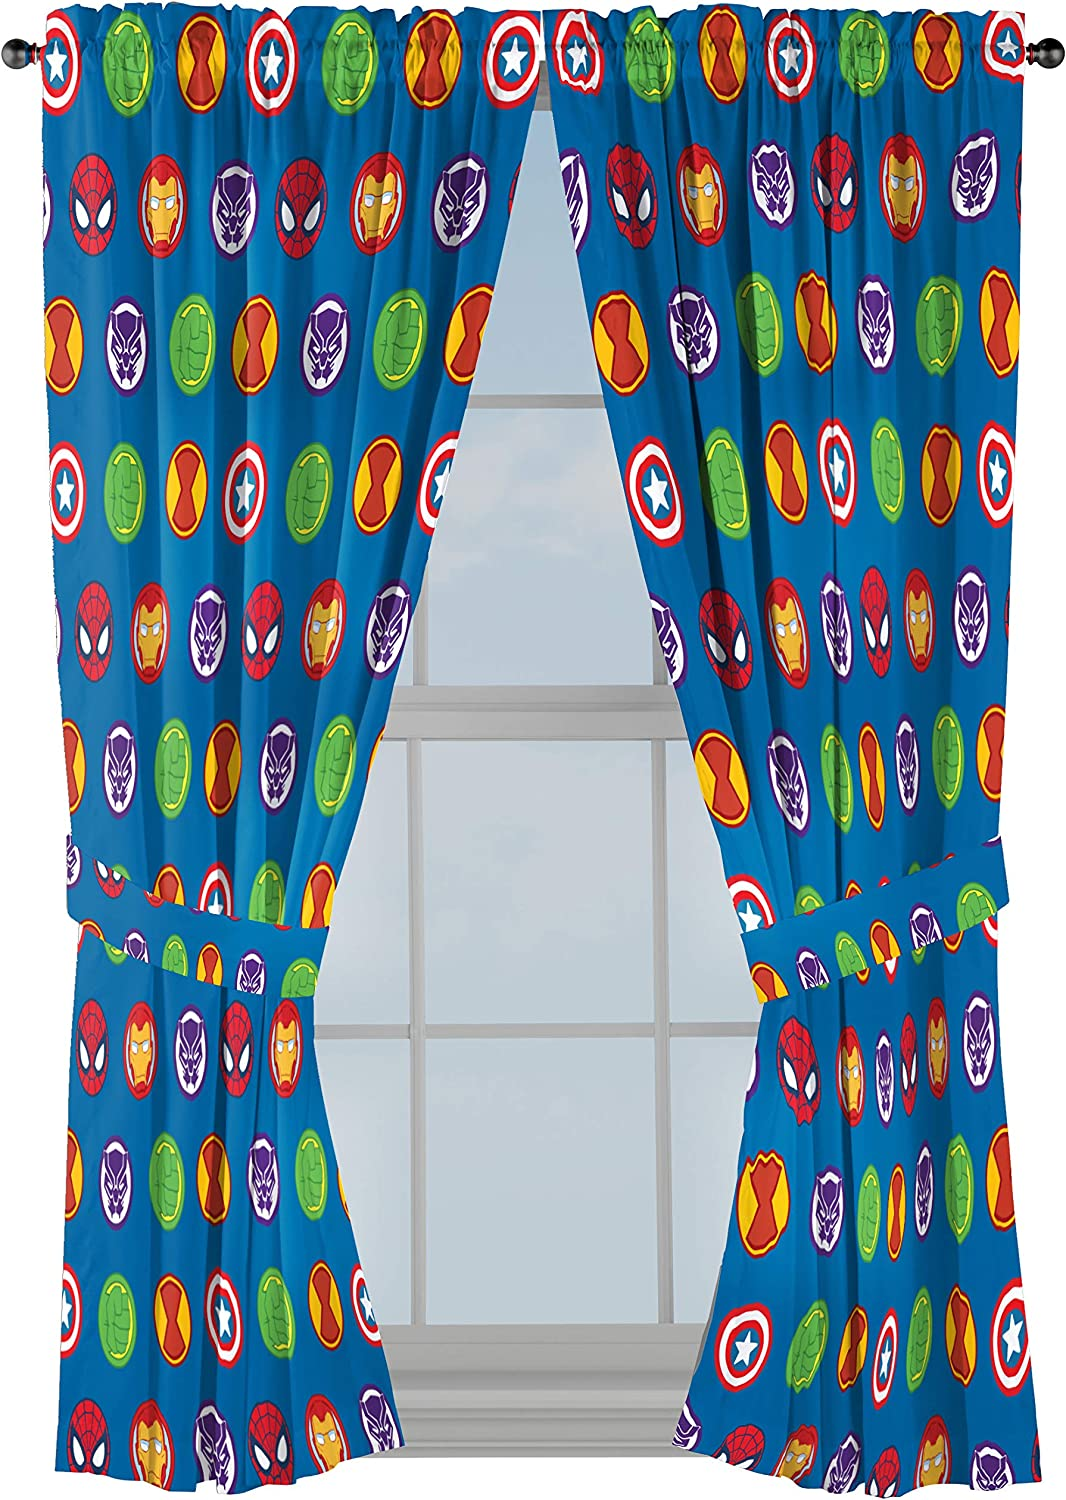 """Marvel Super Hero Adventures Double Team 63"""" Inch Drapes - Beautiful Room Décor & Easy Set Up, Bedding Features The Avengers - Curtains Include 2 Tiebacks, 4 Piece Set (Official Marvel Product)"""